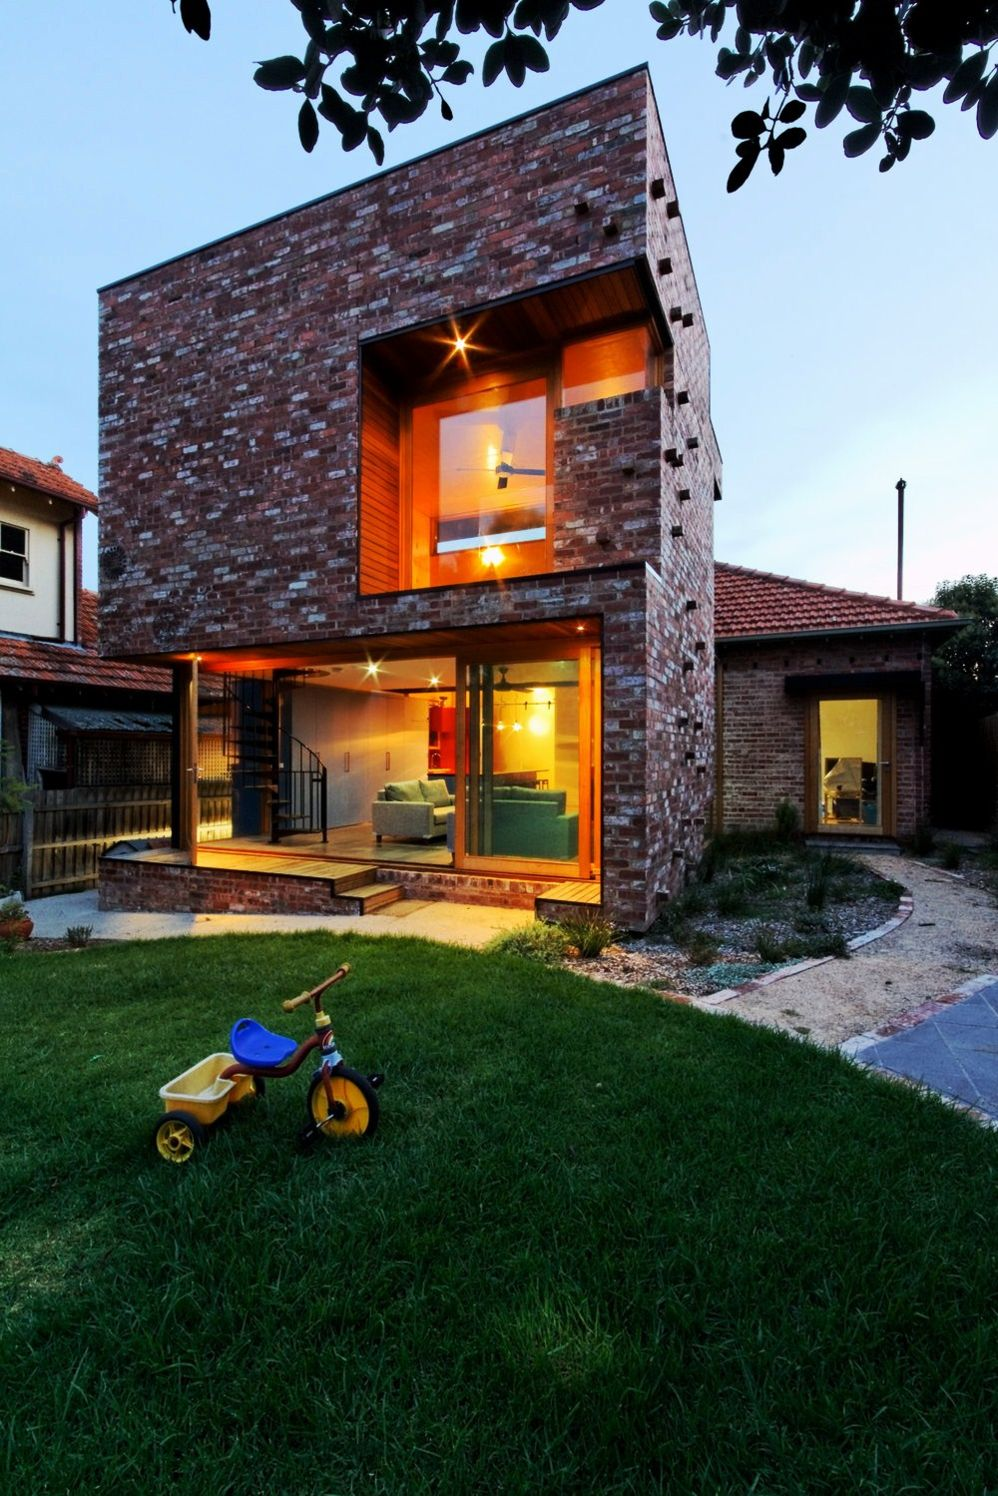 https://elonahome.com/wp-content/uploads/2020/08/Ecofriendly-house-concept-adapting-aesthetic-contemporary-style-showcasing-brick-outside-wall-in-prominent-cube-design-Ilma-Grove-3.jpg